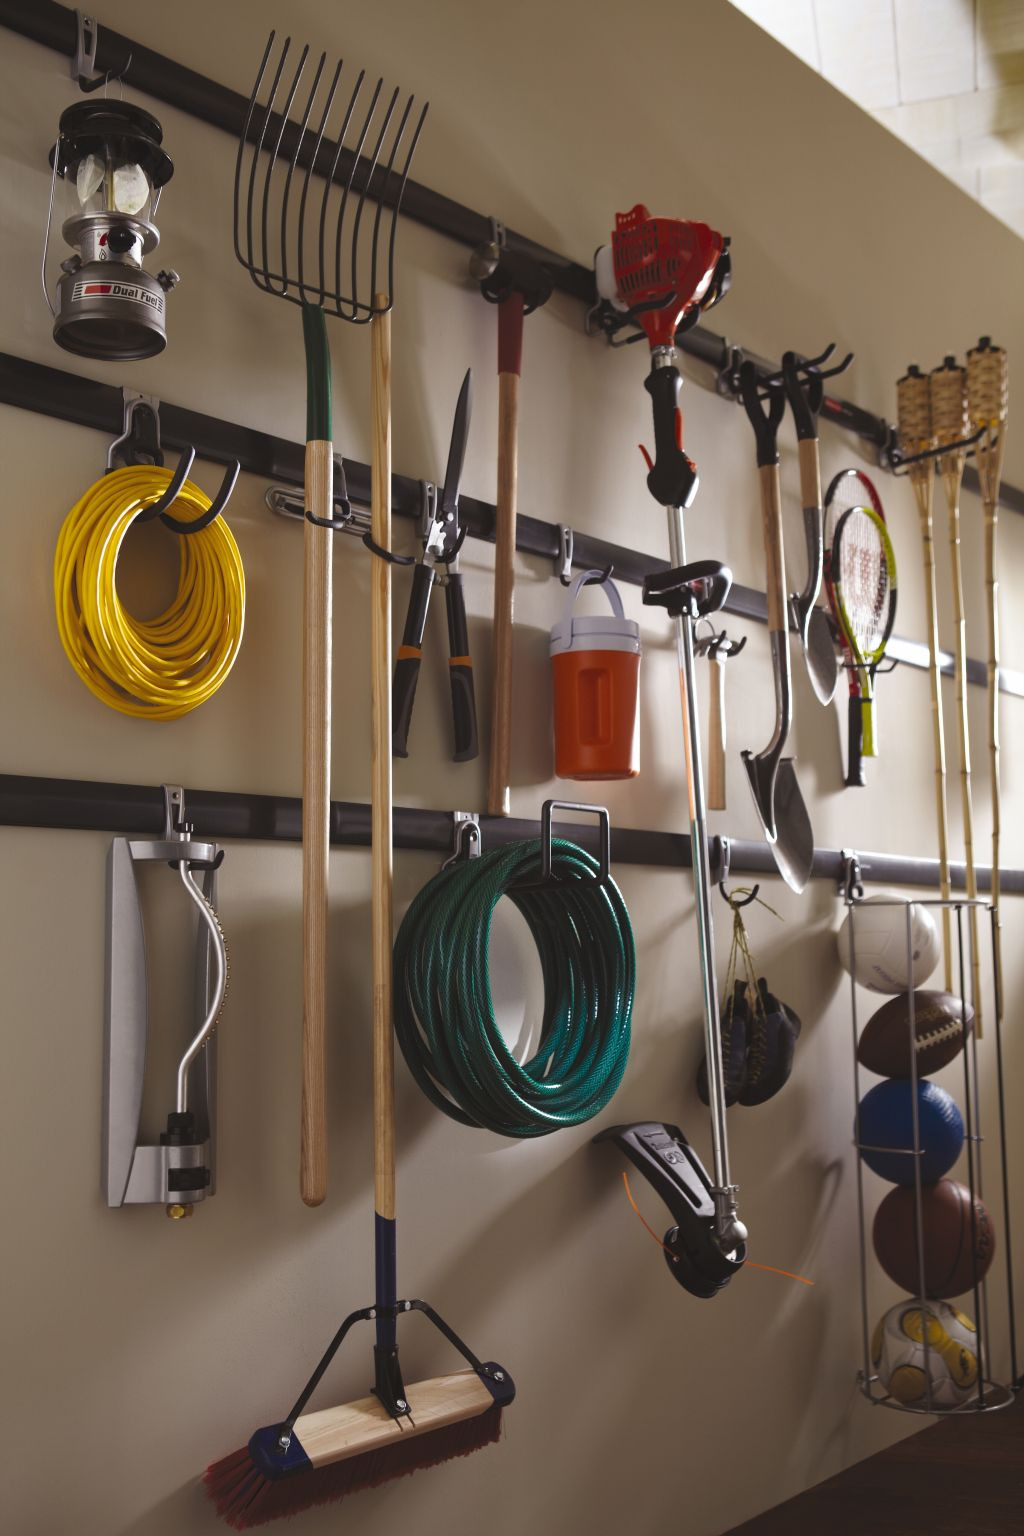 Garage Organization Systems  Time To Sort Out The Mess – 20 Tips For A Well Organized